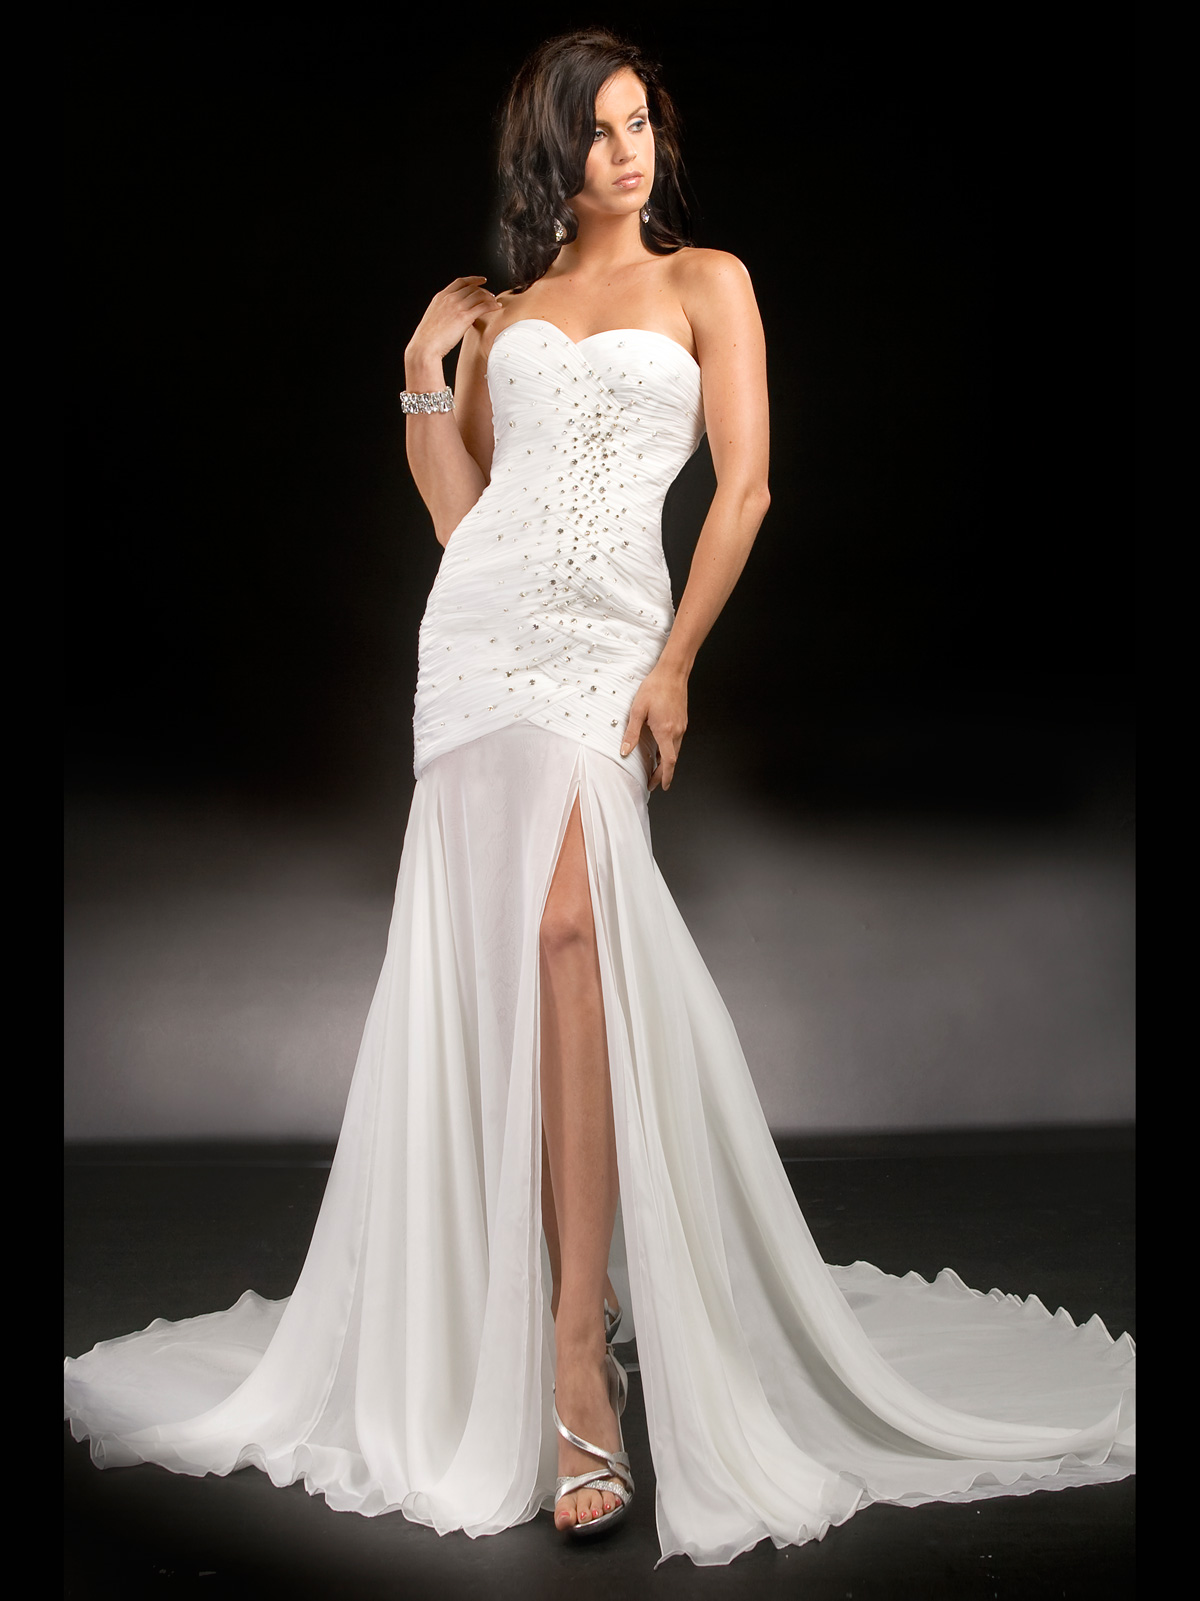 Flattering Pageant Dress Prima Donna 5575: PageantDesigns.com